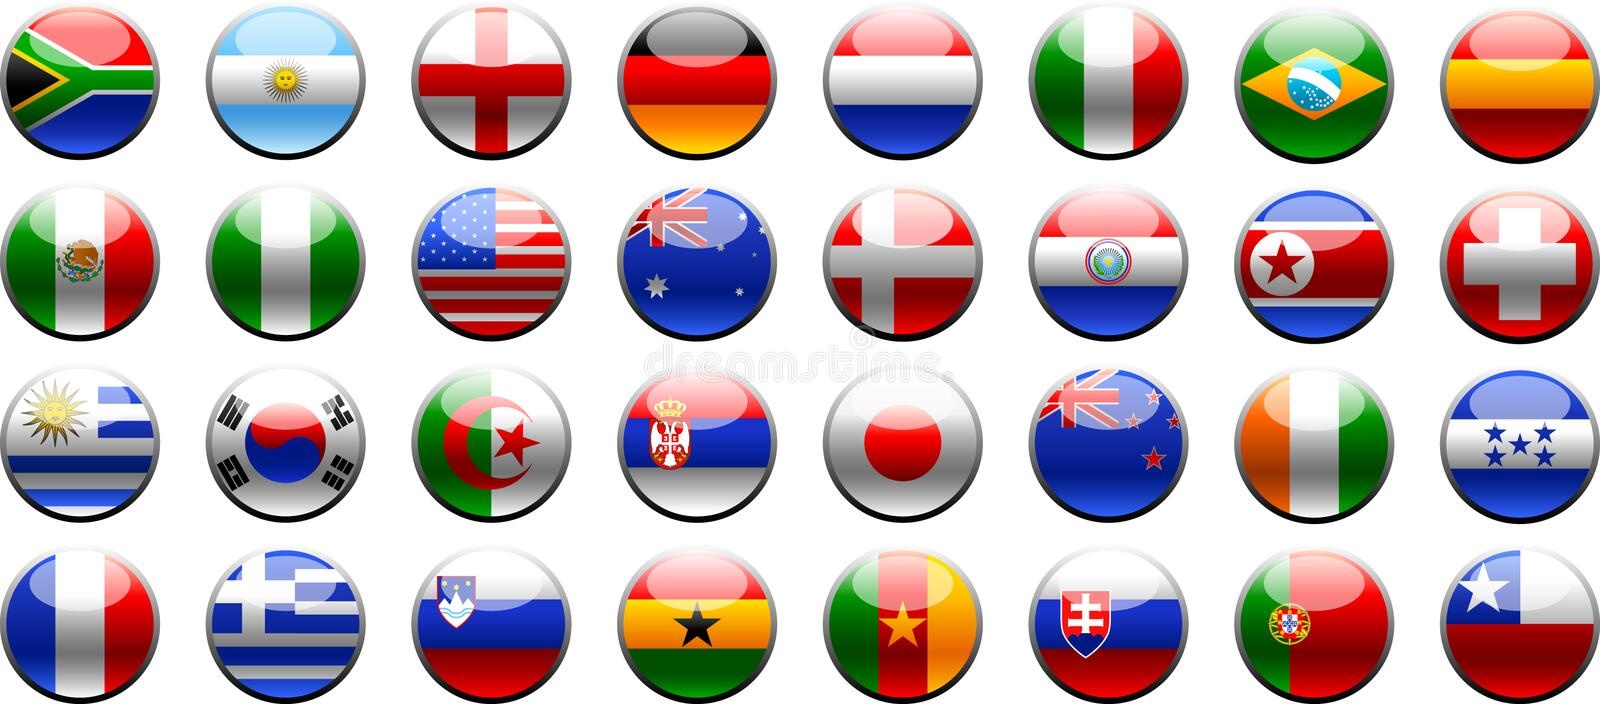 Flags 2010 FIFA world cup stock photo